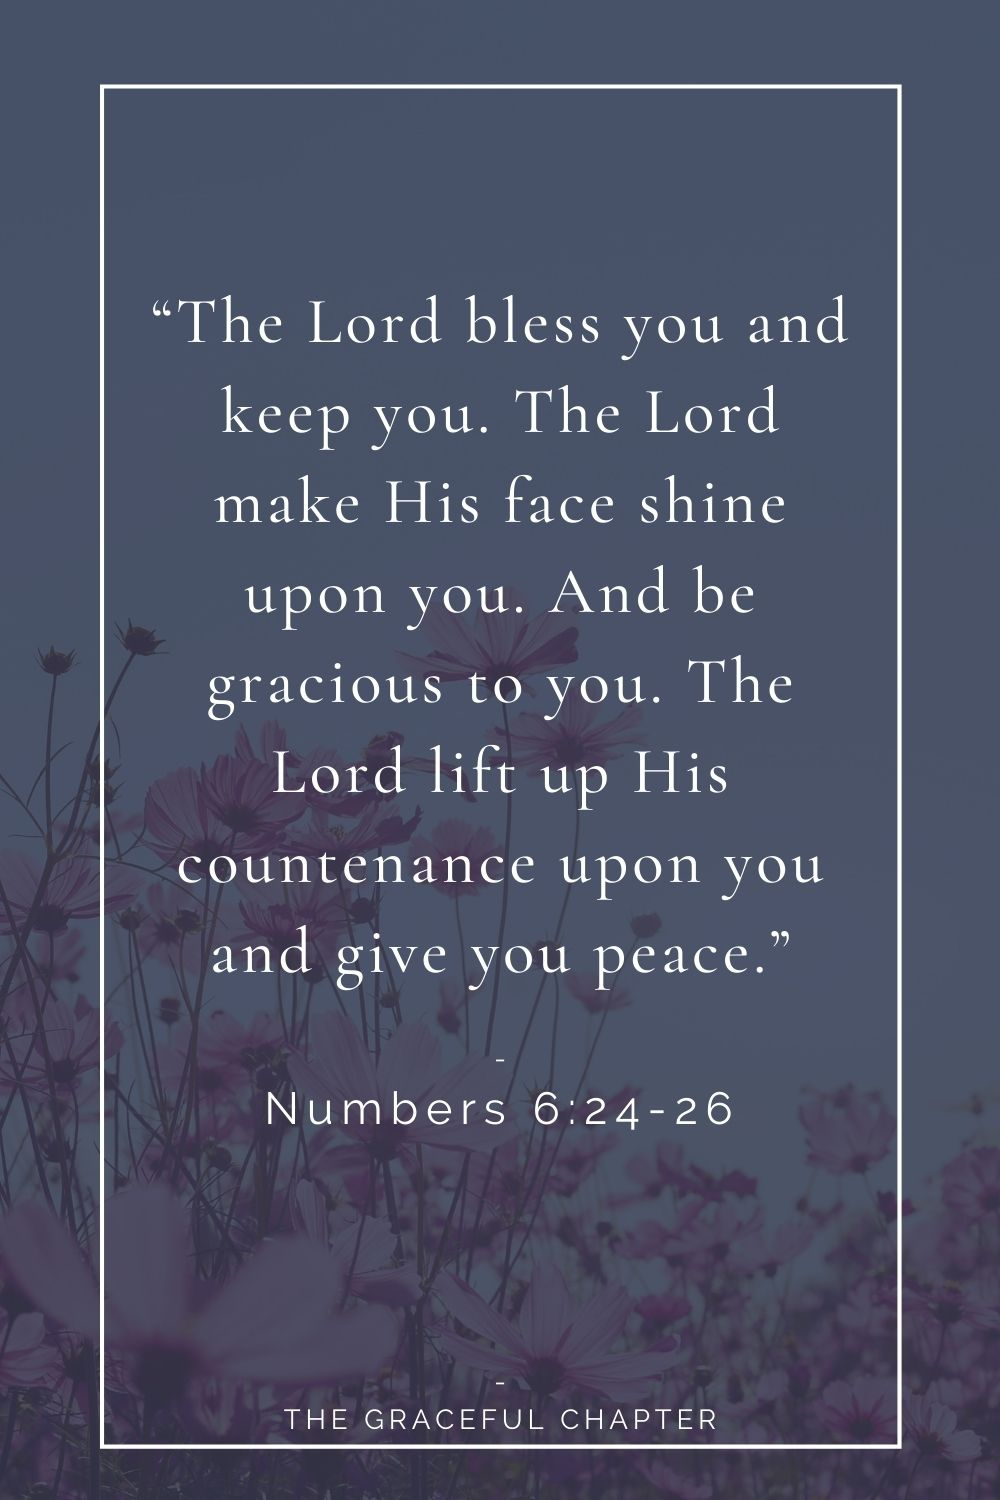 """""""The Lord bless you and keep you. The Lord make His face shine upon you. And be gracious to you. The Lord lift up His countenance upon you and give you peace."""" Numbers 6:24-26""""The Lord bless you and keep you. The Lord make His face shine upon you. And be gracious to you. The Lord lift up His countenance upon you and give you peace."""""""